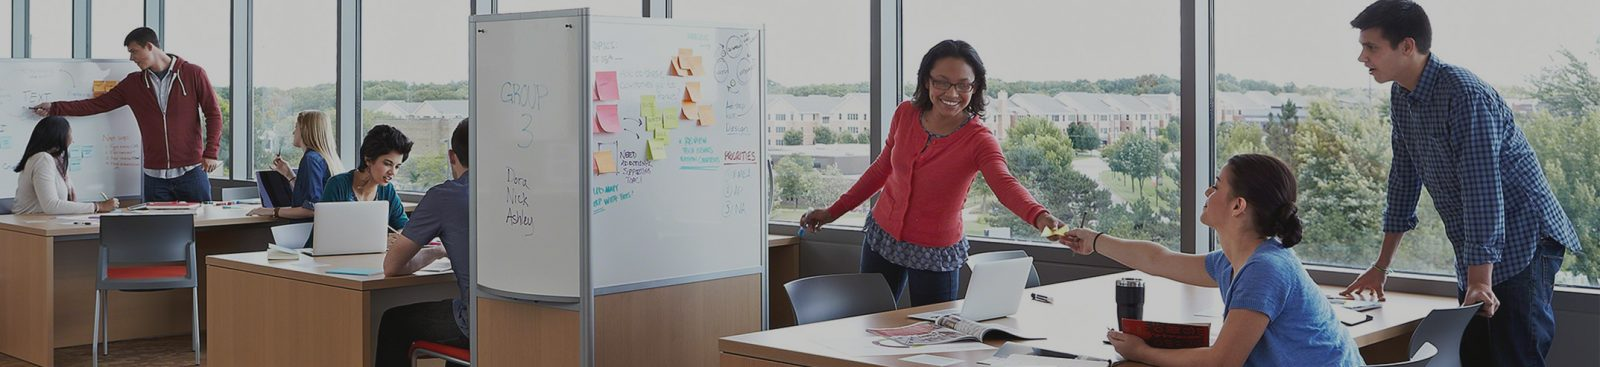 How your office can encourage collaboration image